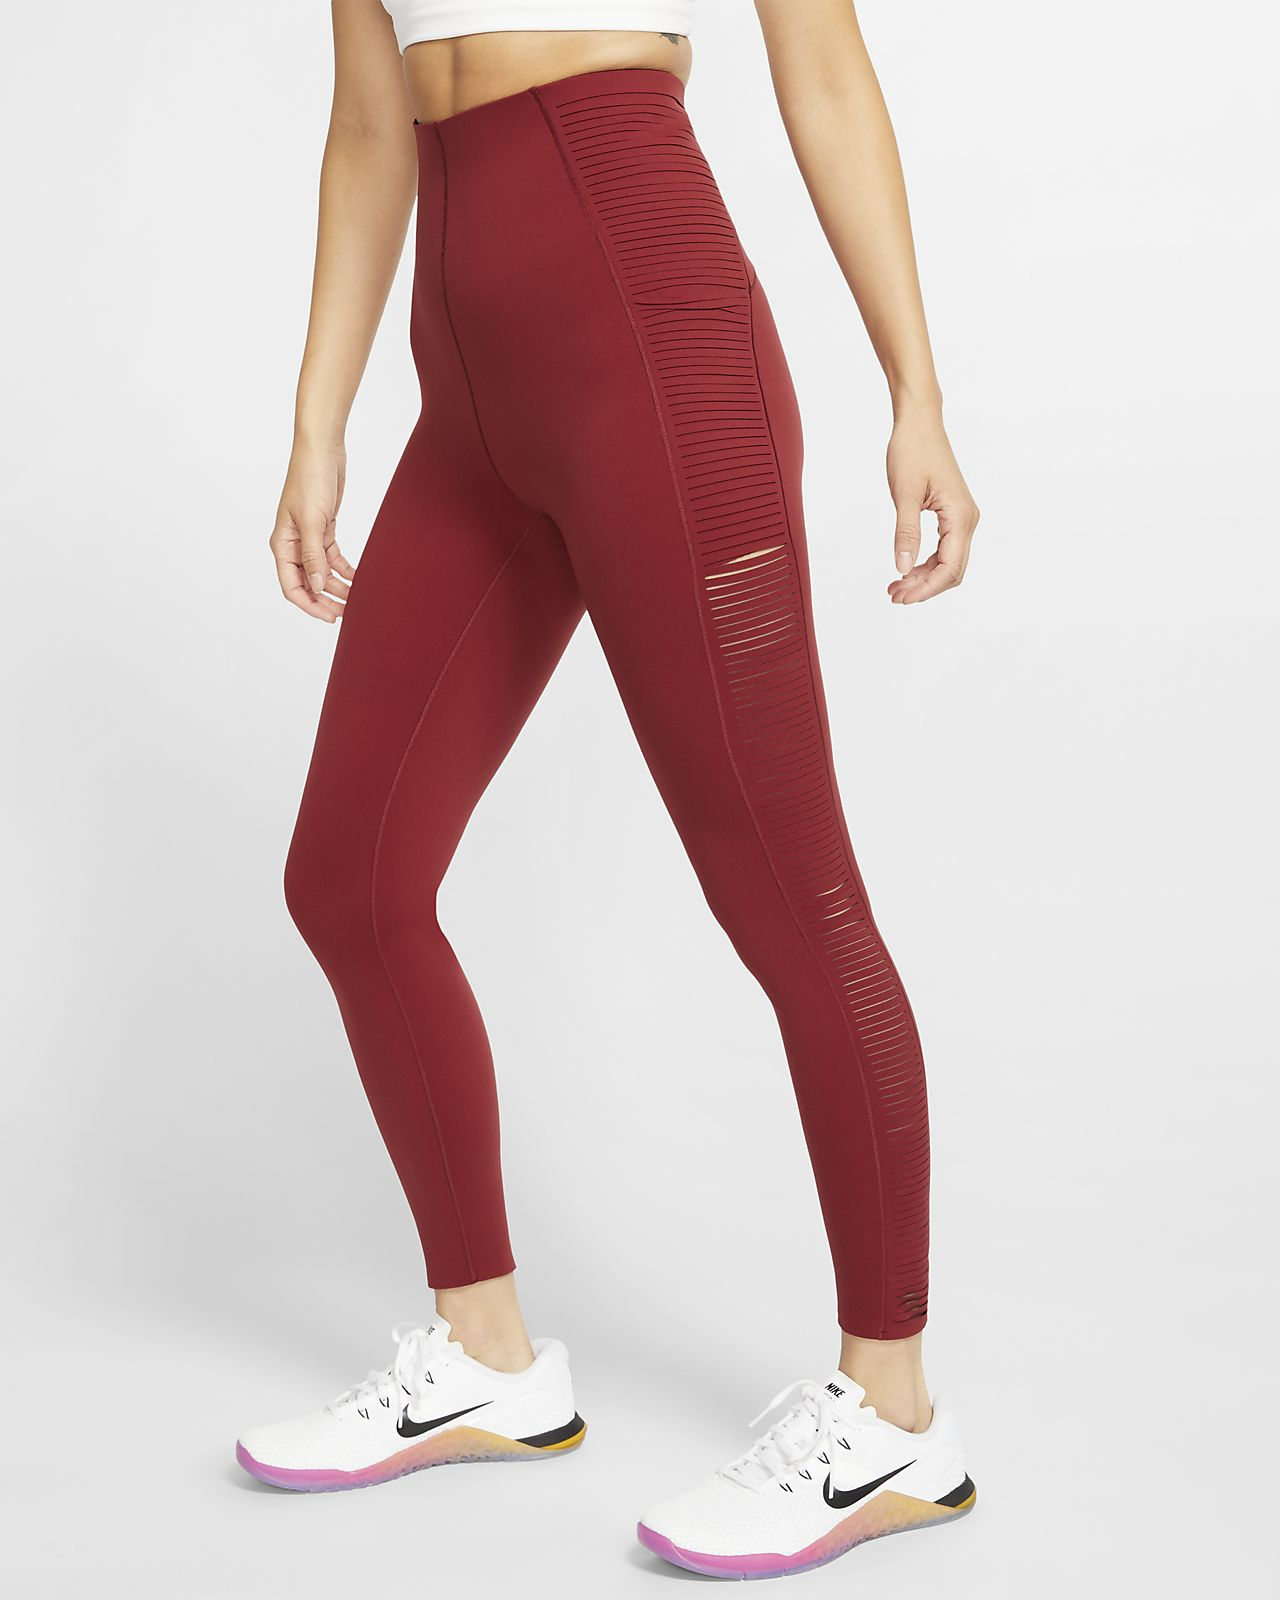 Nike Women's Fringe Training Leggings